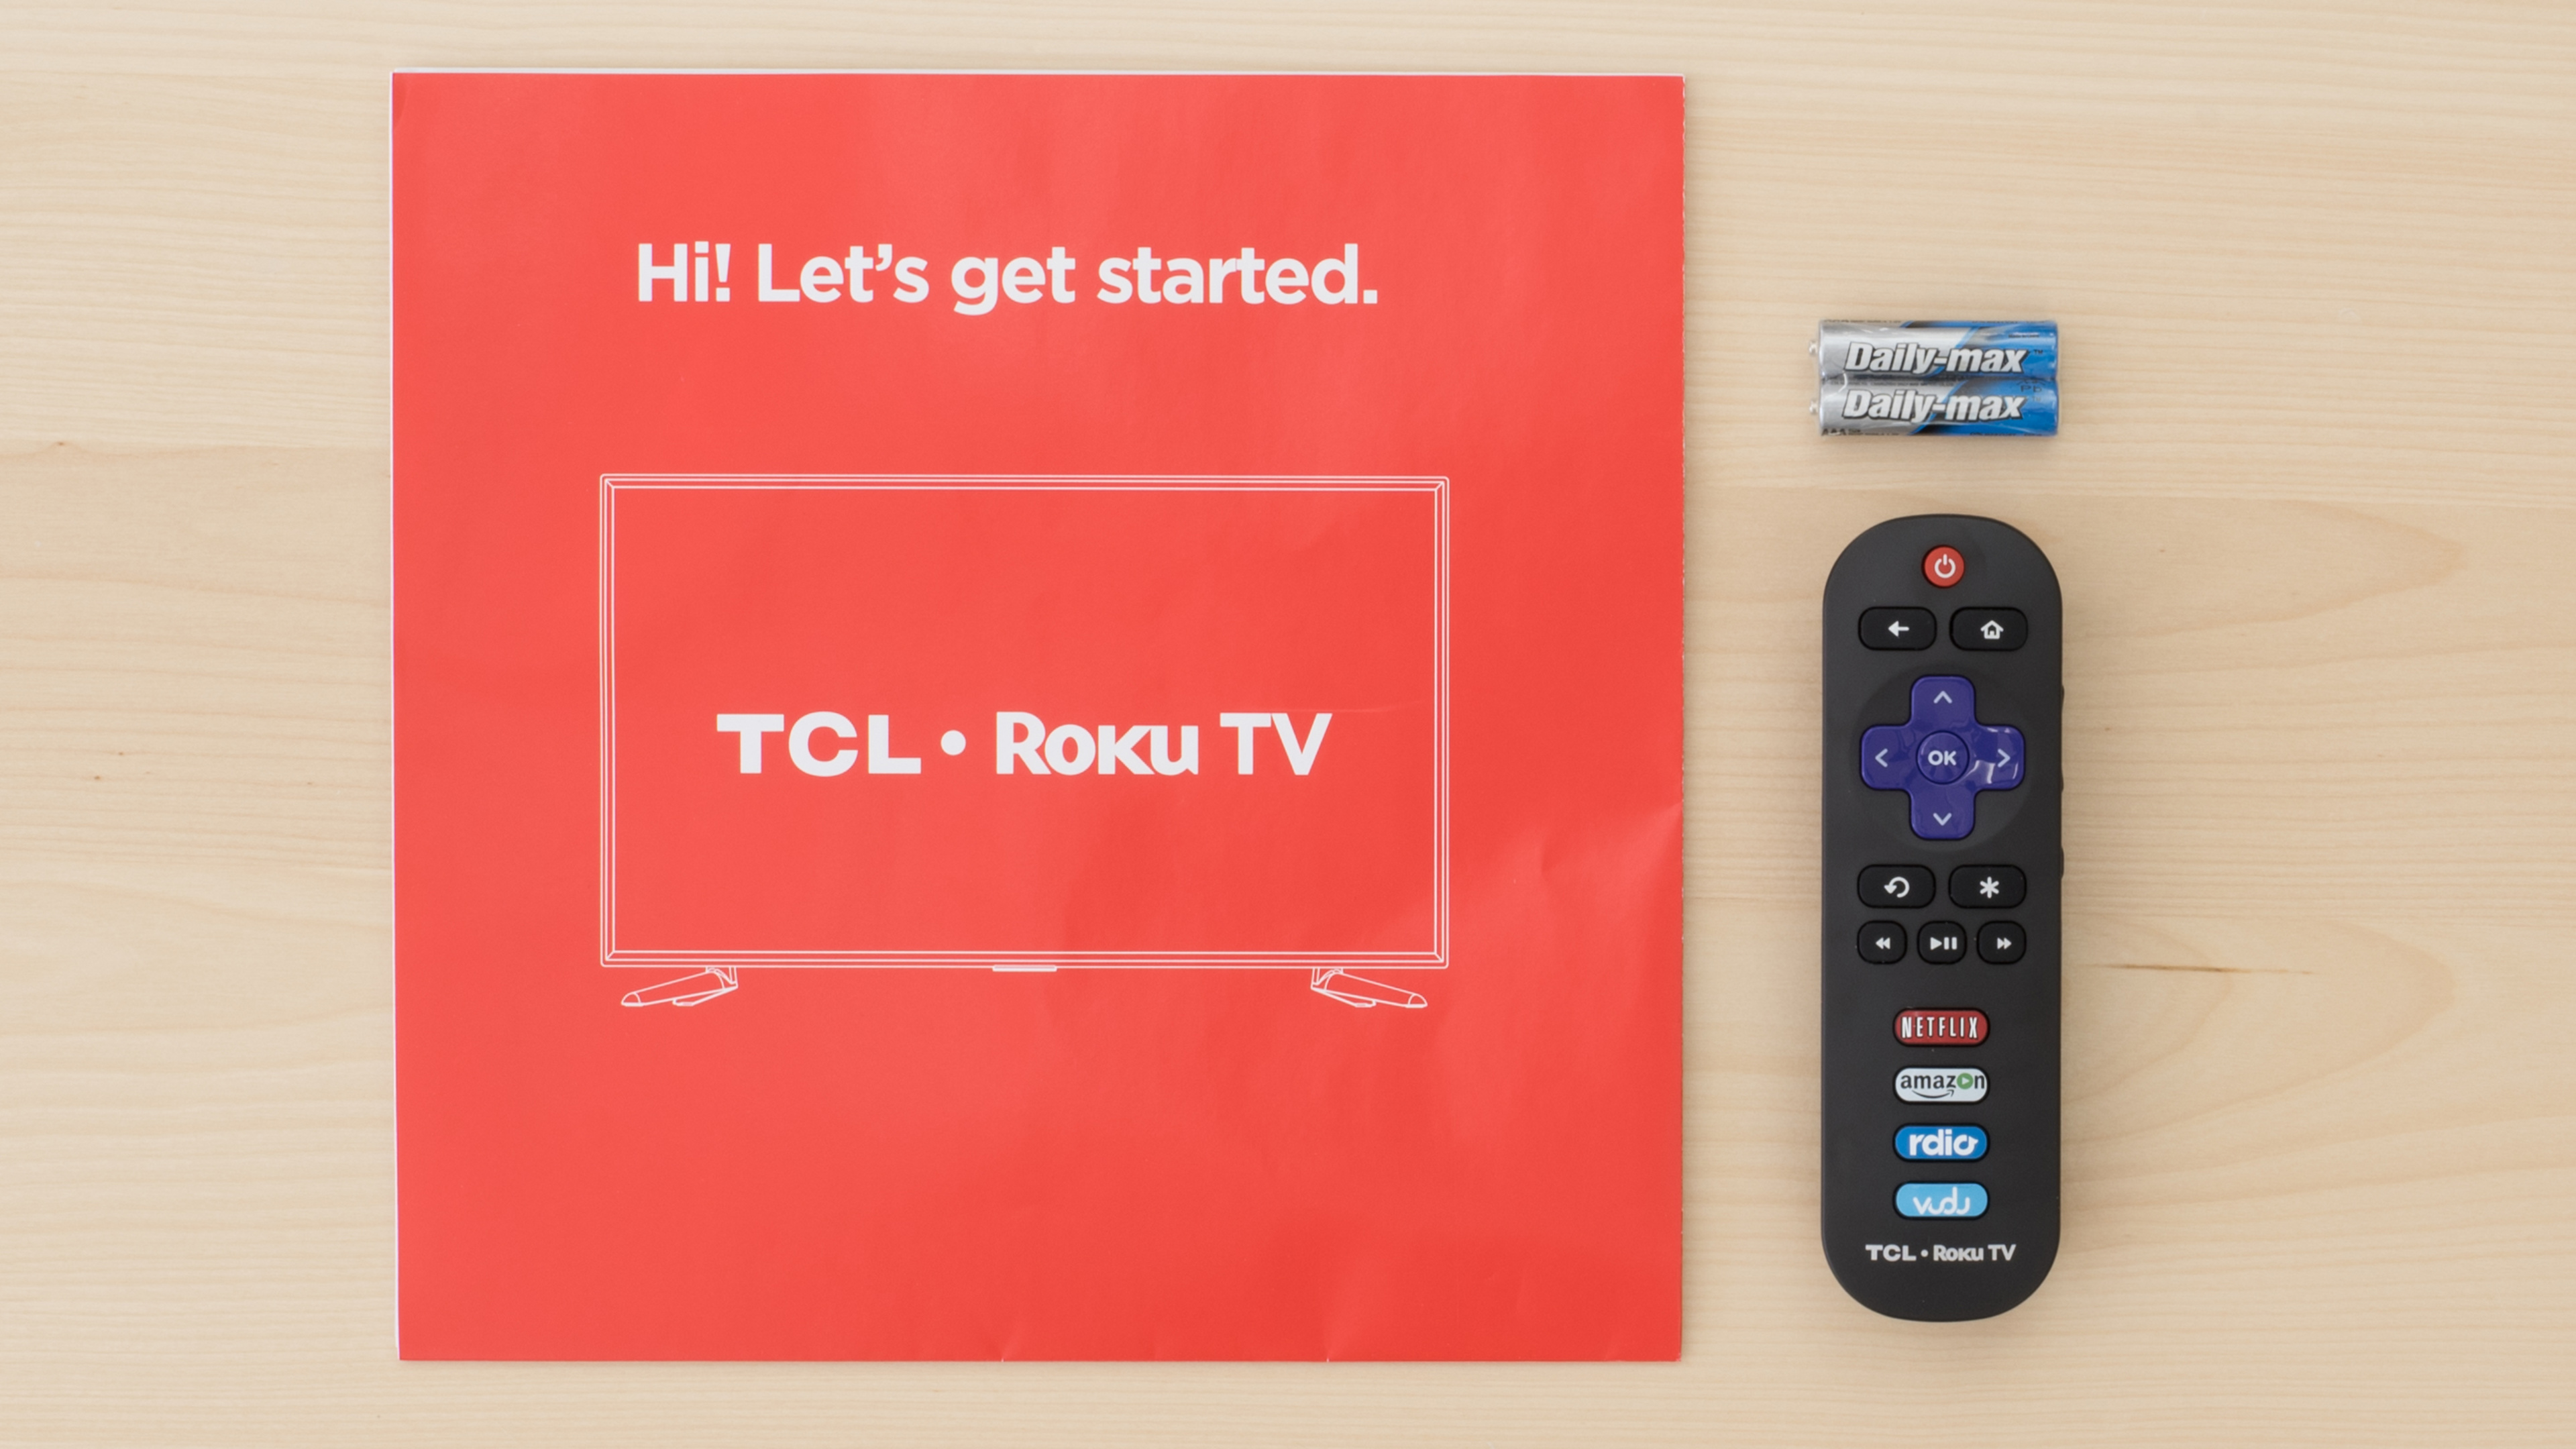 Expect tcl manual